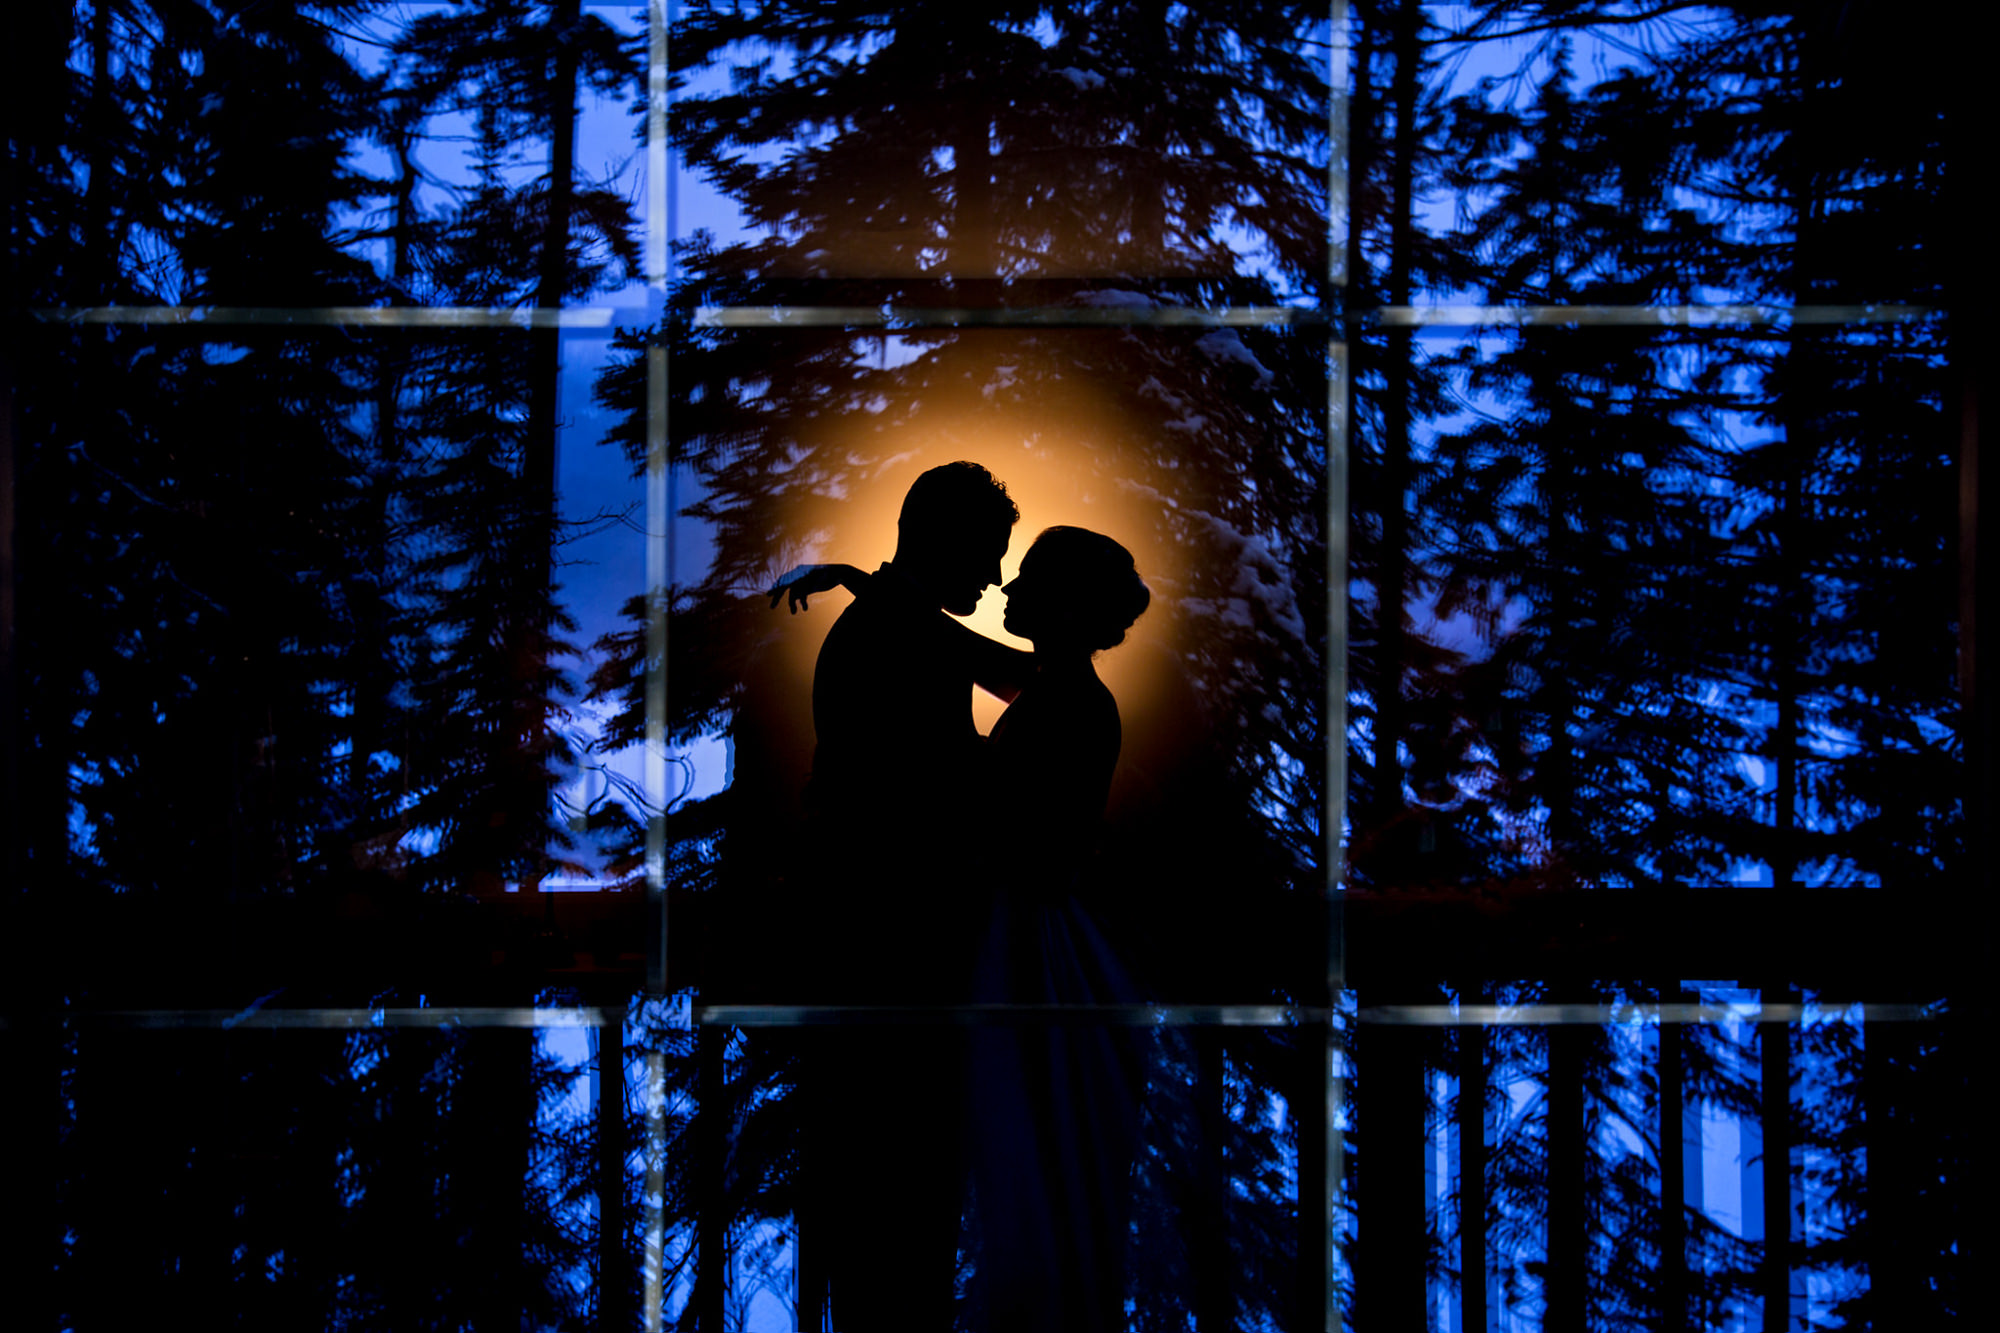 Silhouette of couple against evening trees - photo by Two Mann Studios